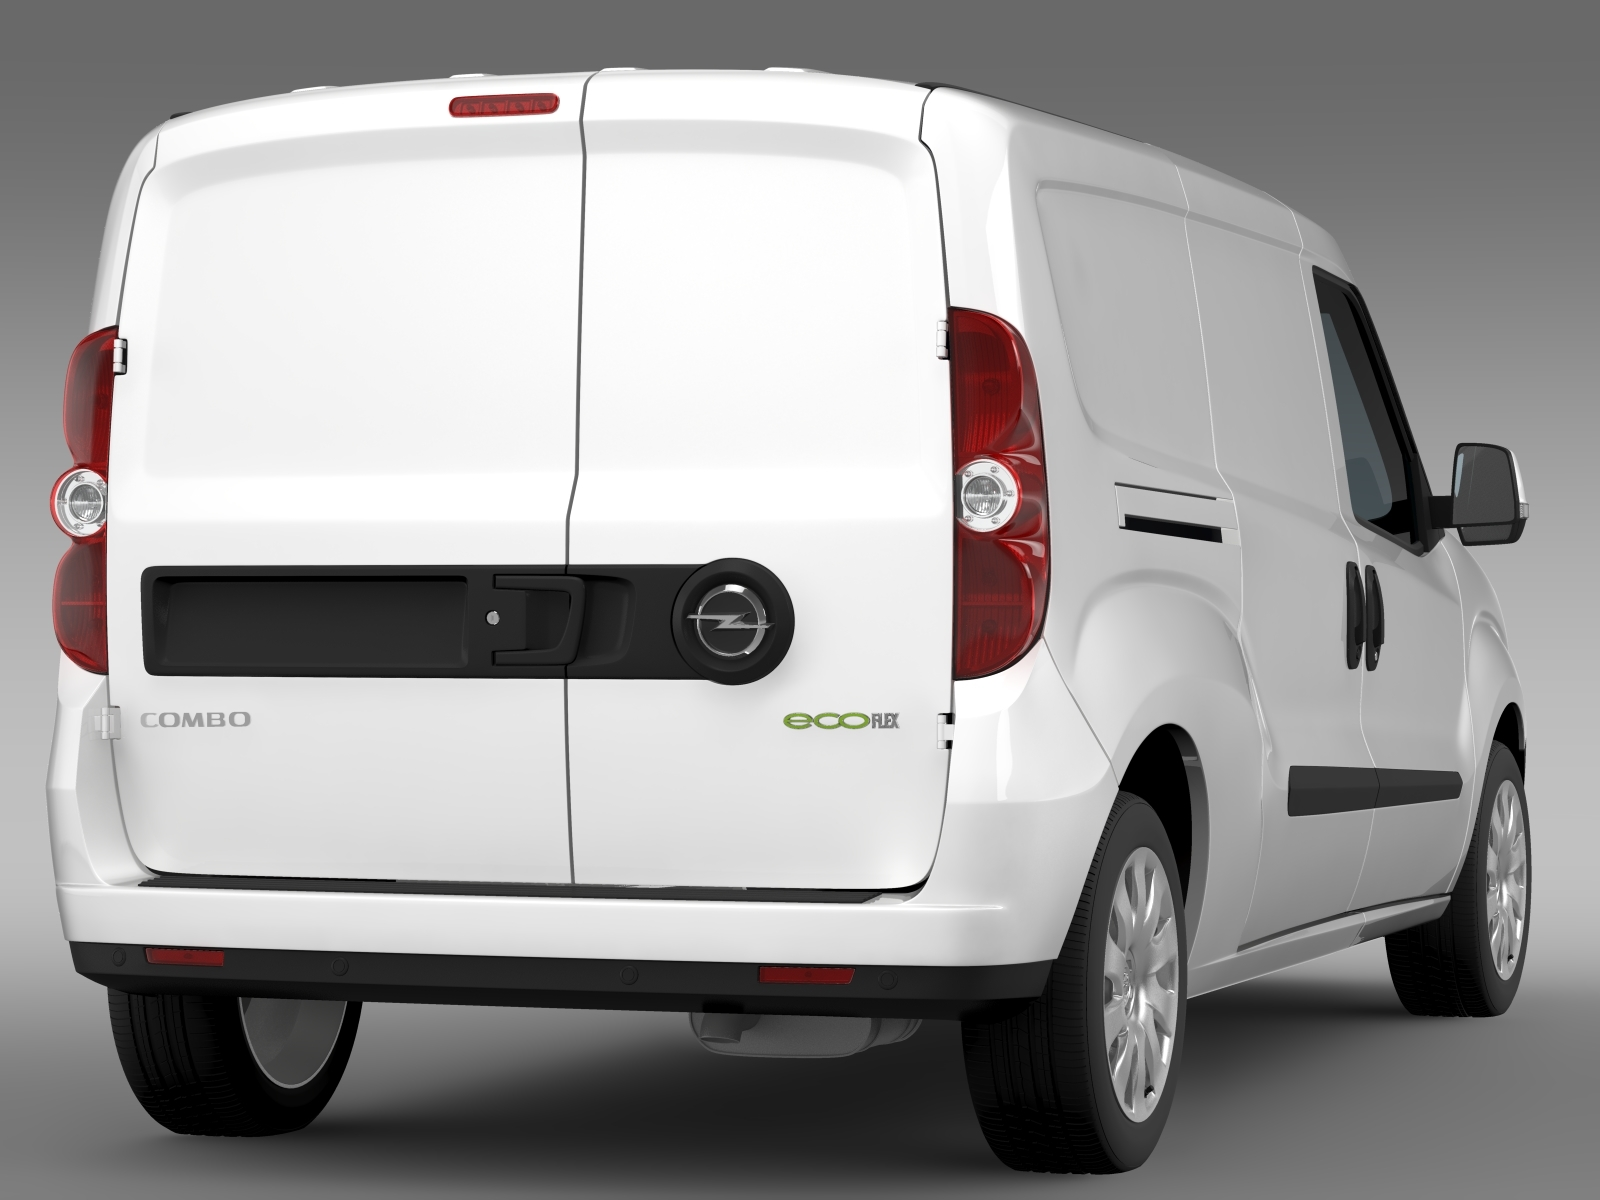 opel combo lwb cargo d 2015 by creator 3d 3docean. Black Bedroom Furniture Sets. Home Design Ideas